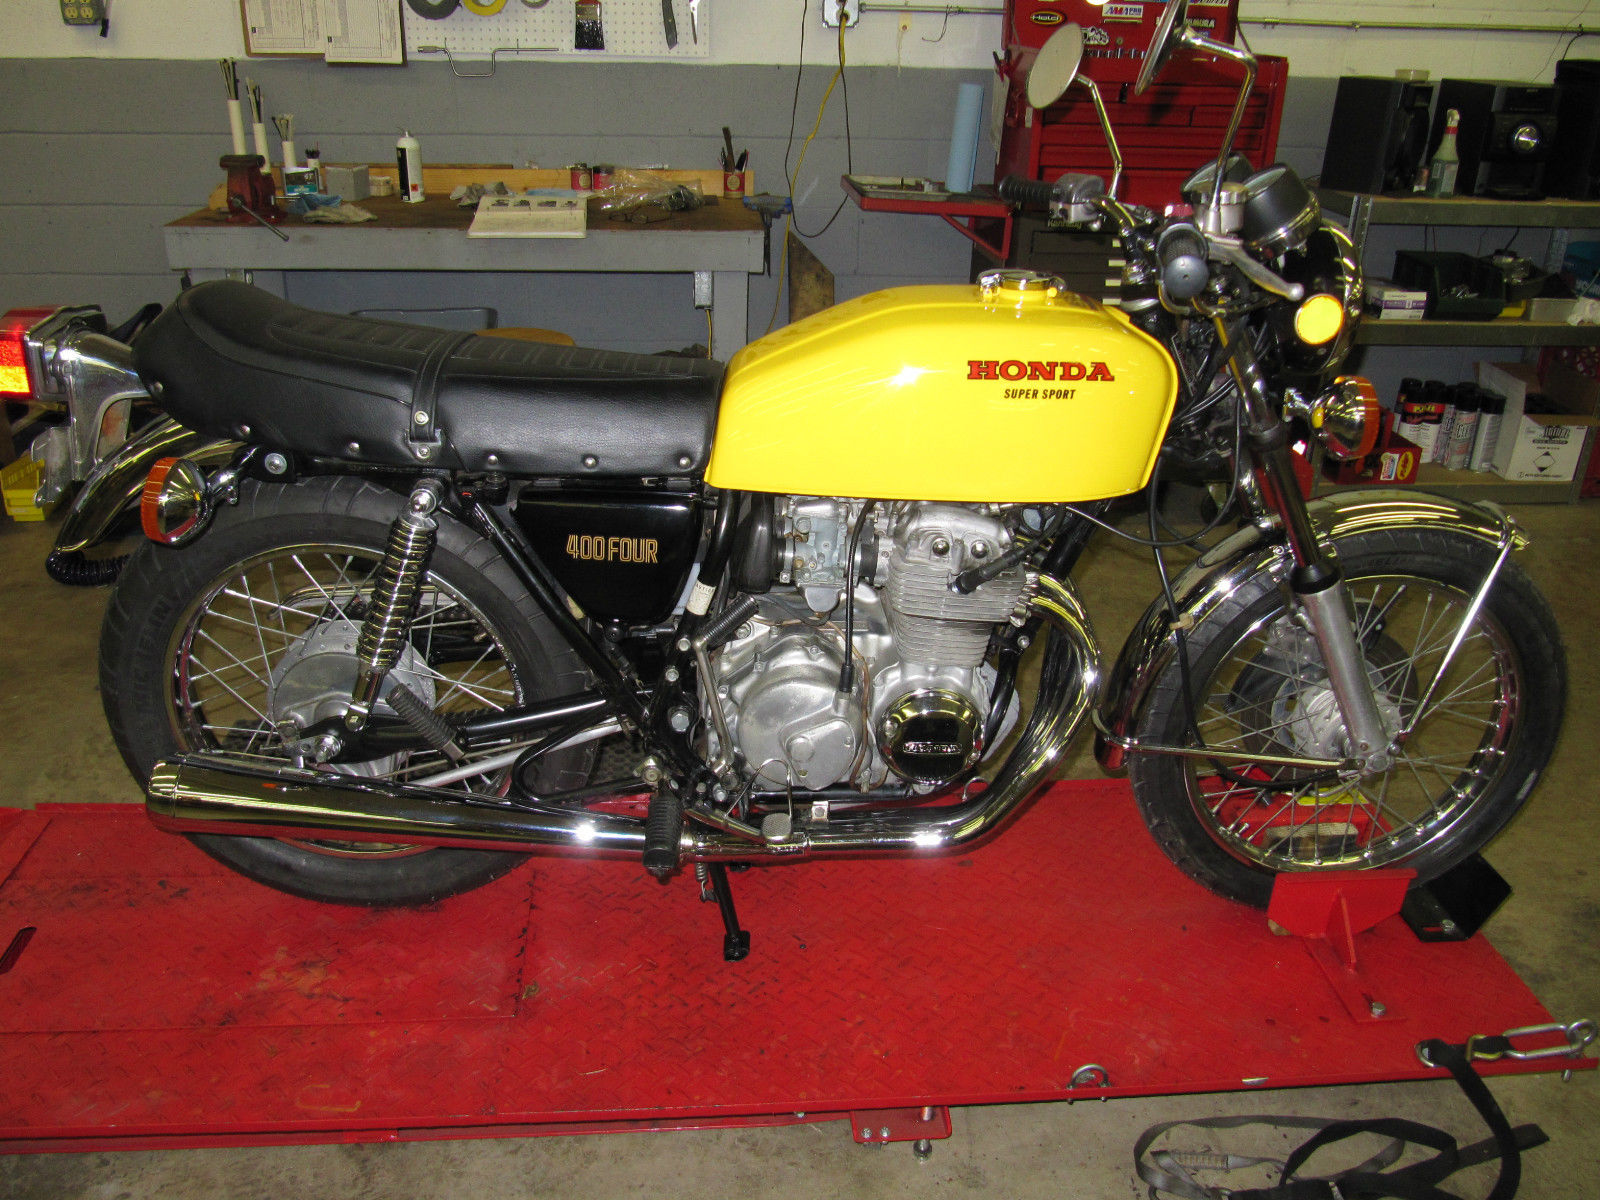 Bikes 1975 Cb400f Supersport Honda CB Yellow Right